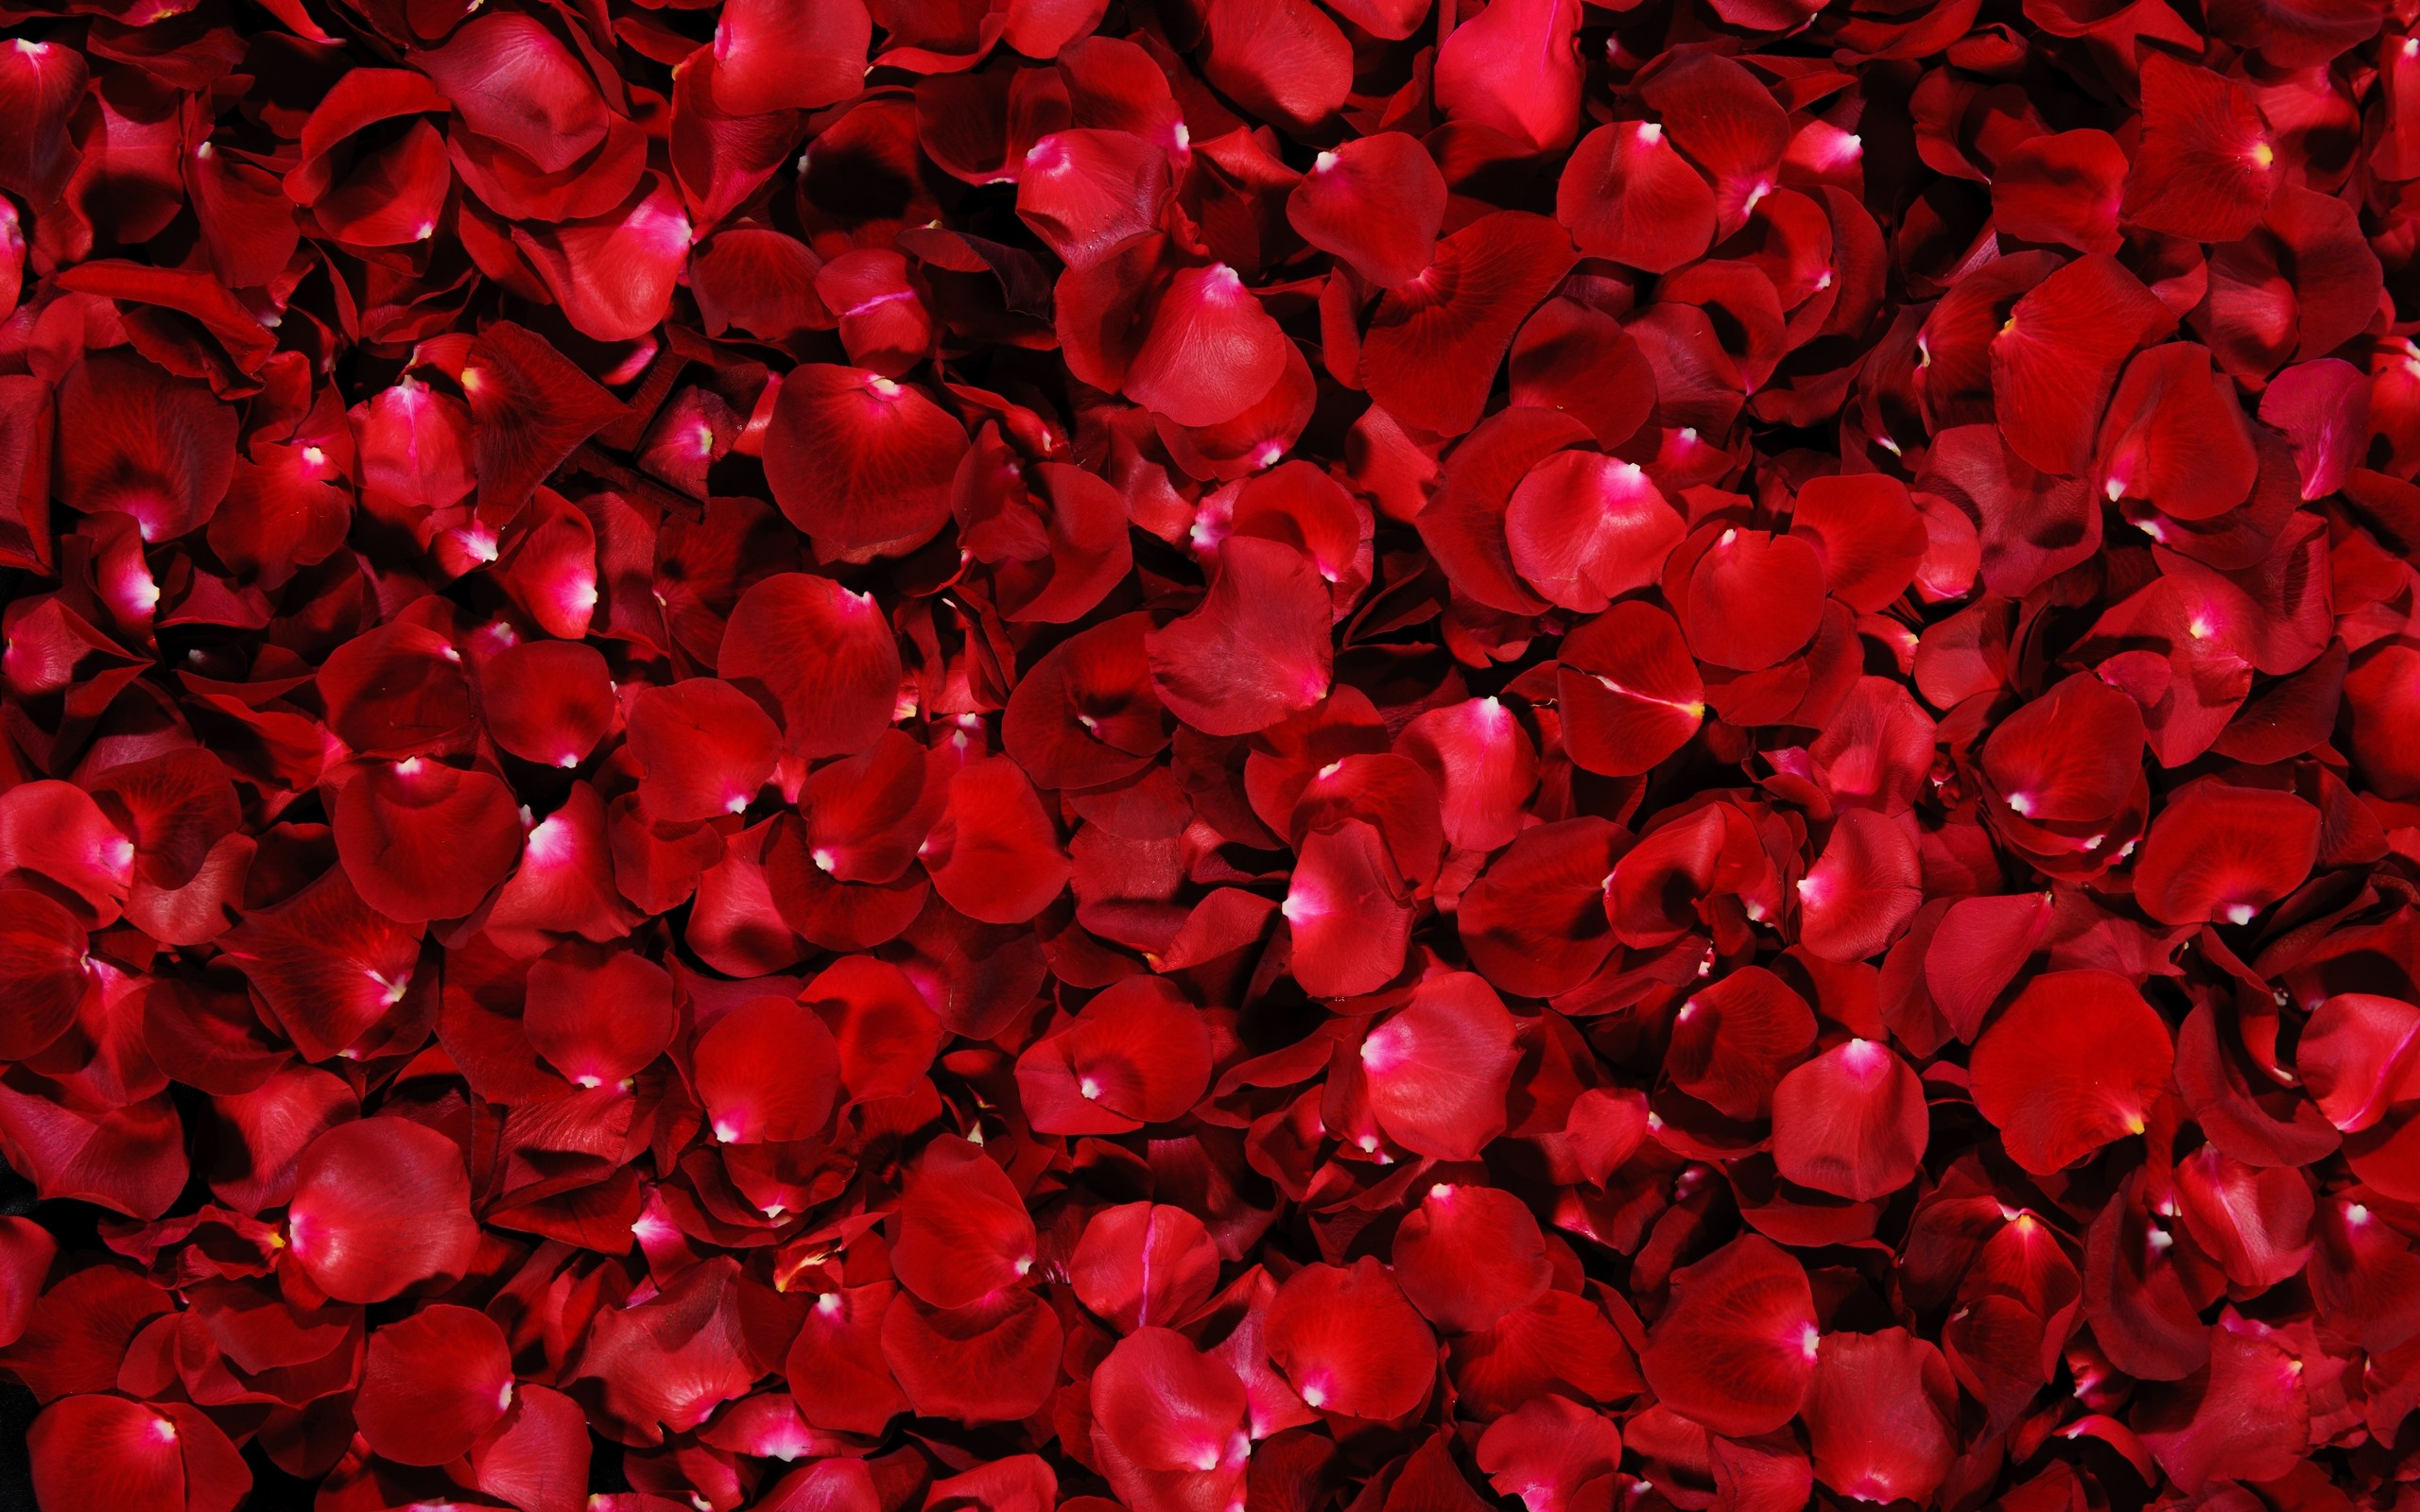 Flowers flower petals wallpaper background